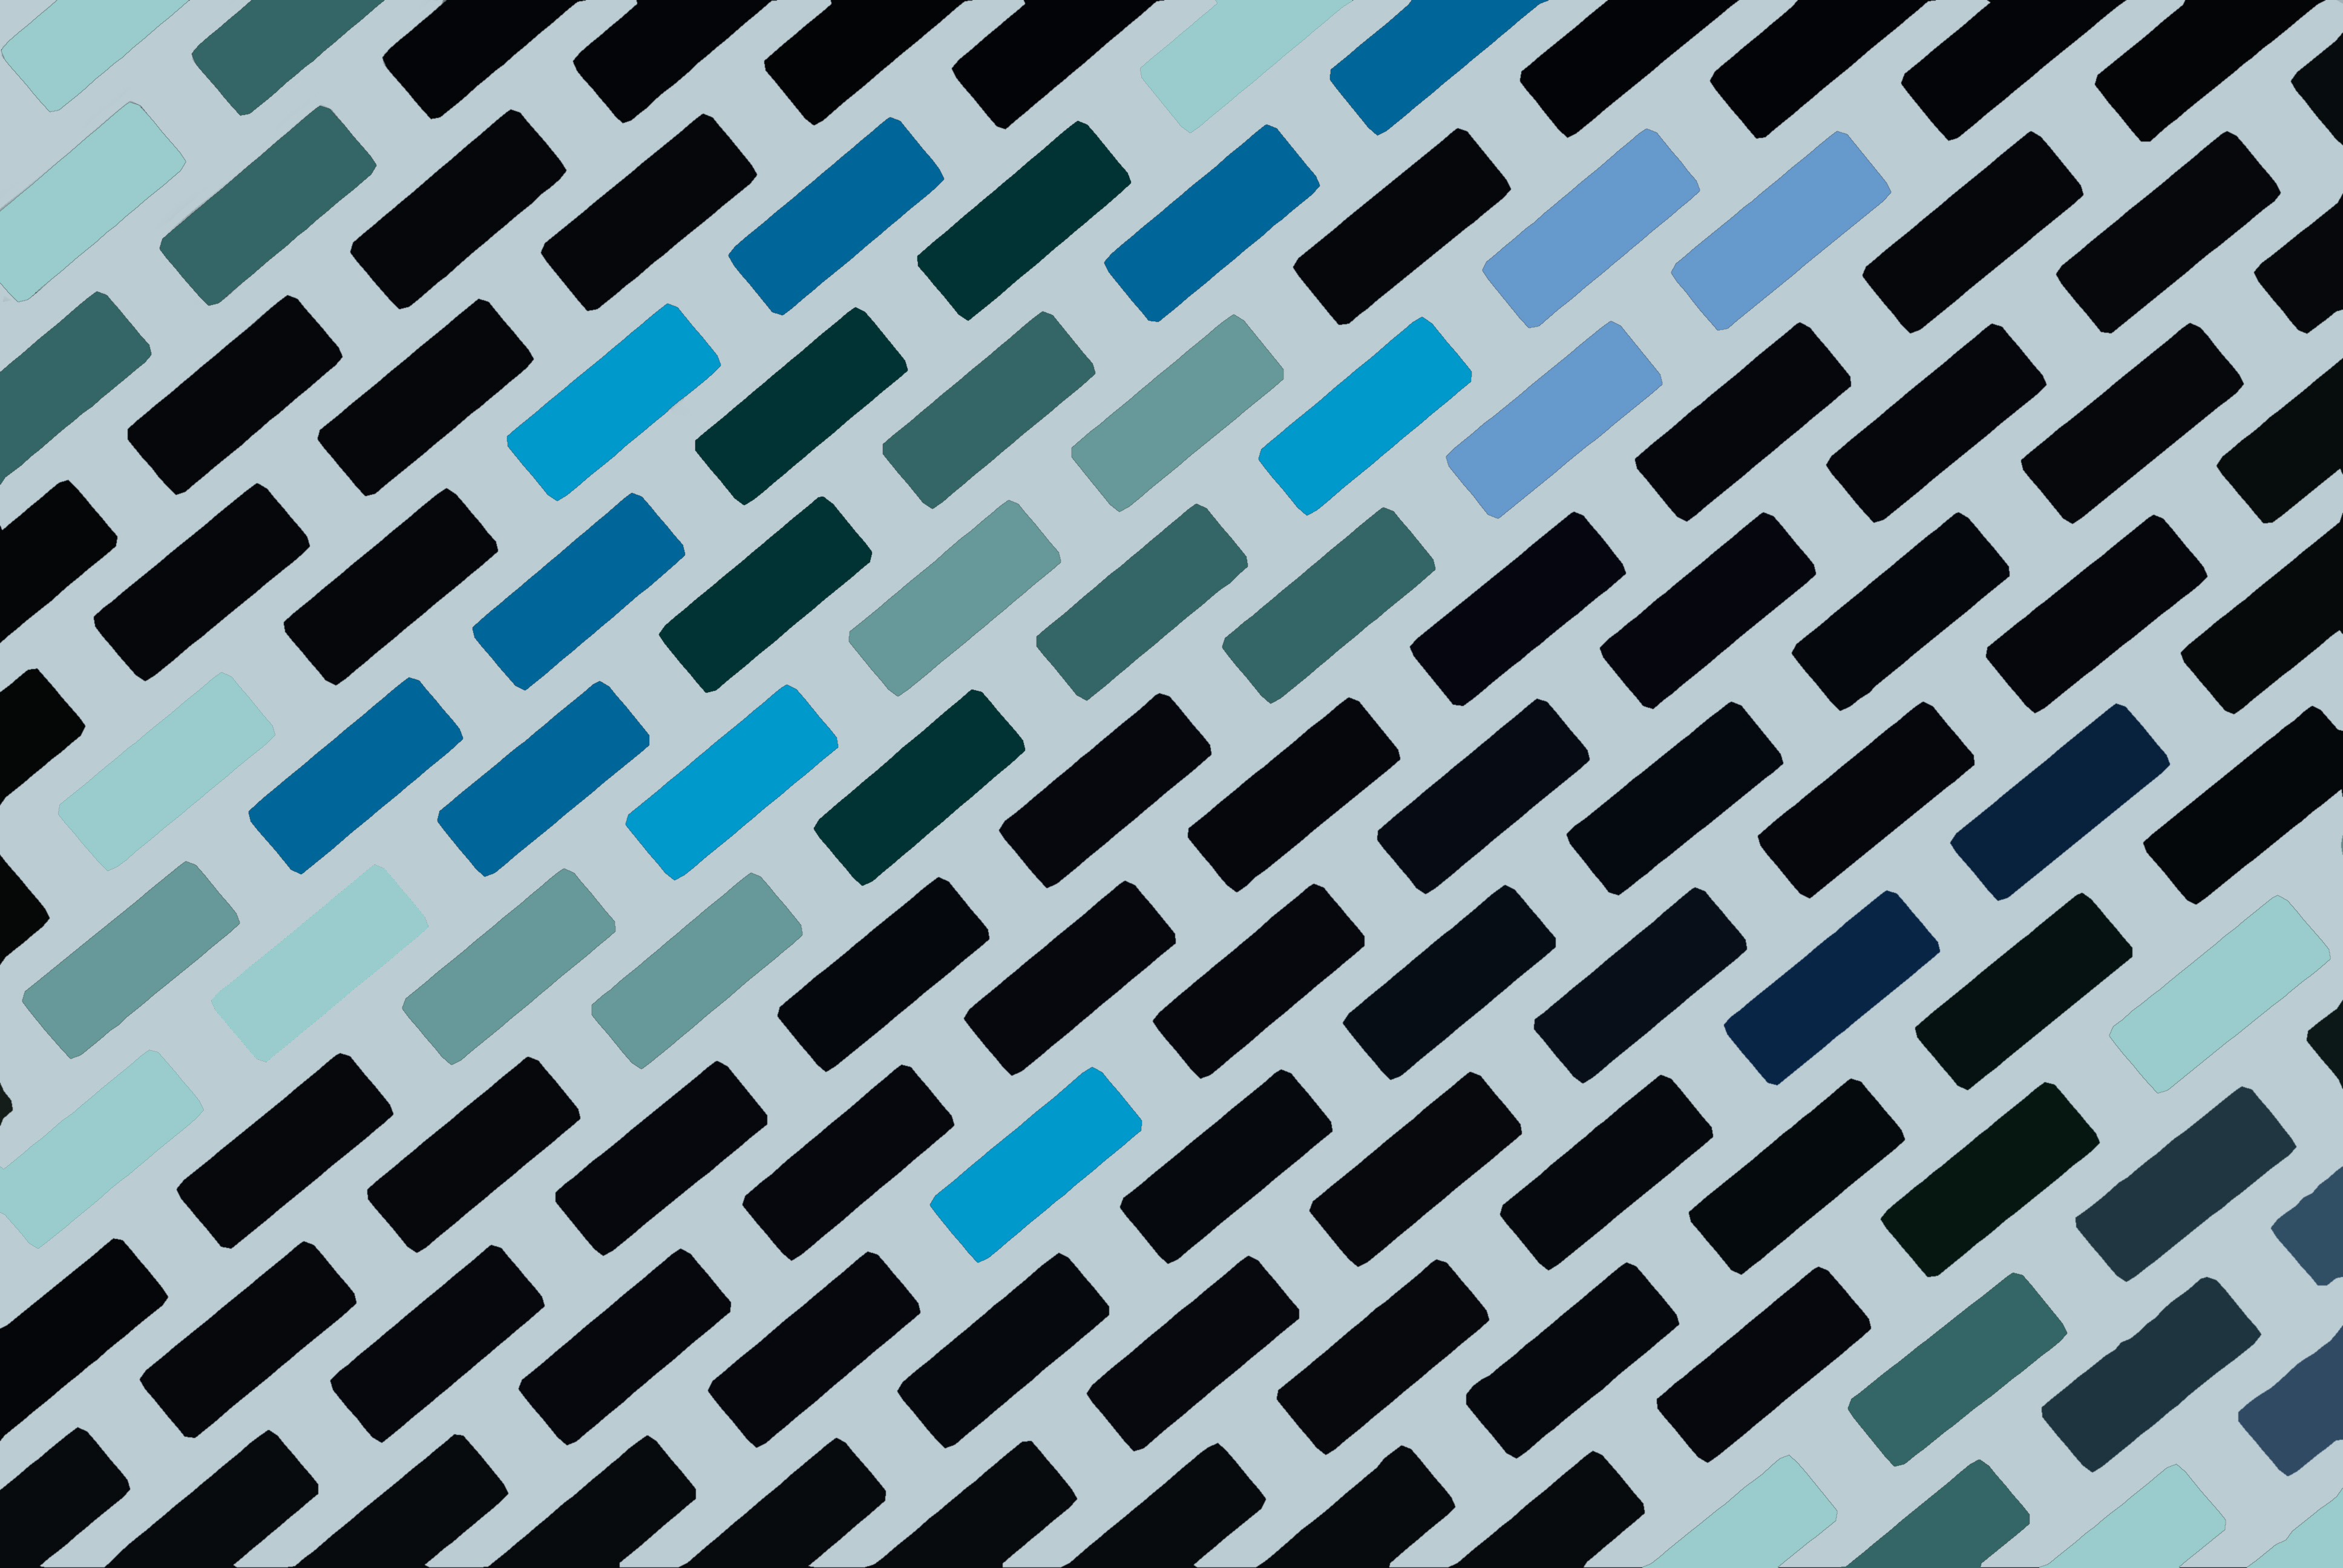 tessellated rectangles 45 degreee angle blue colours